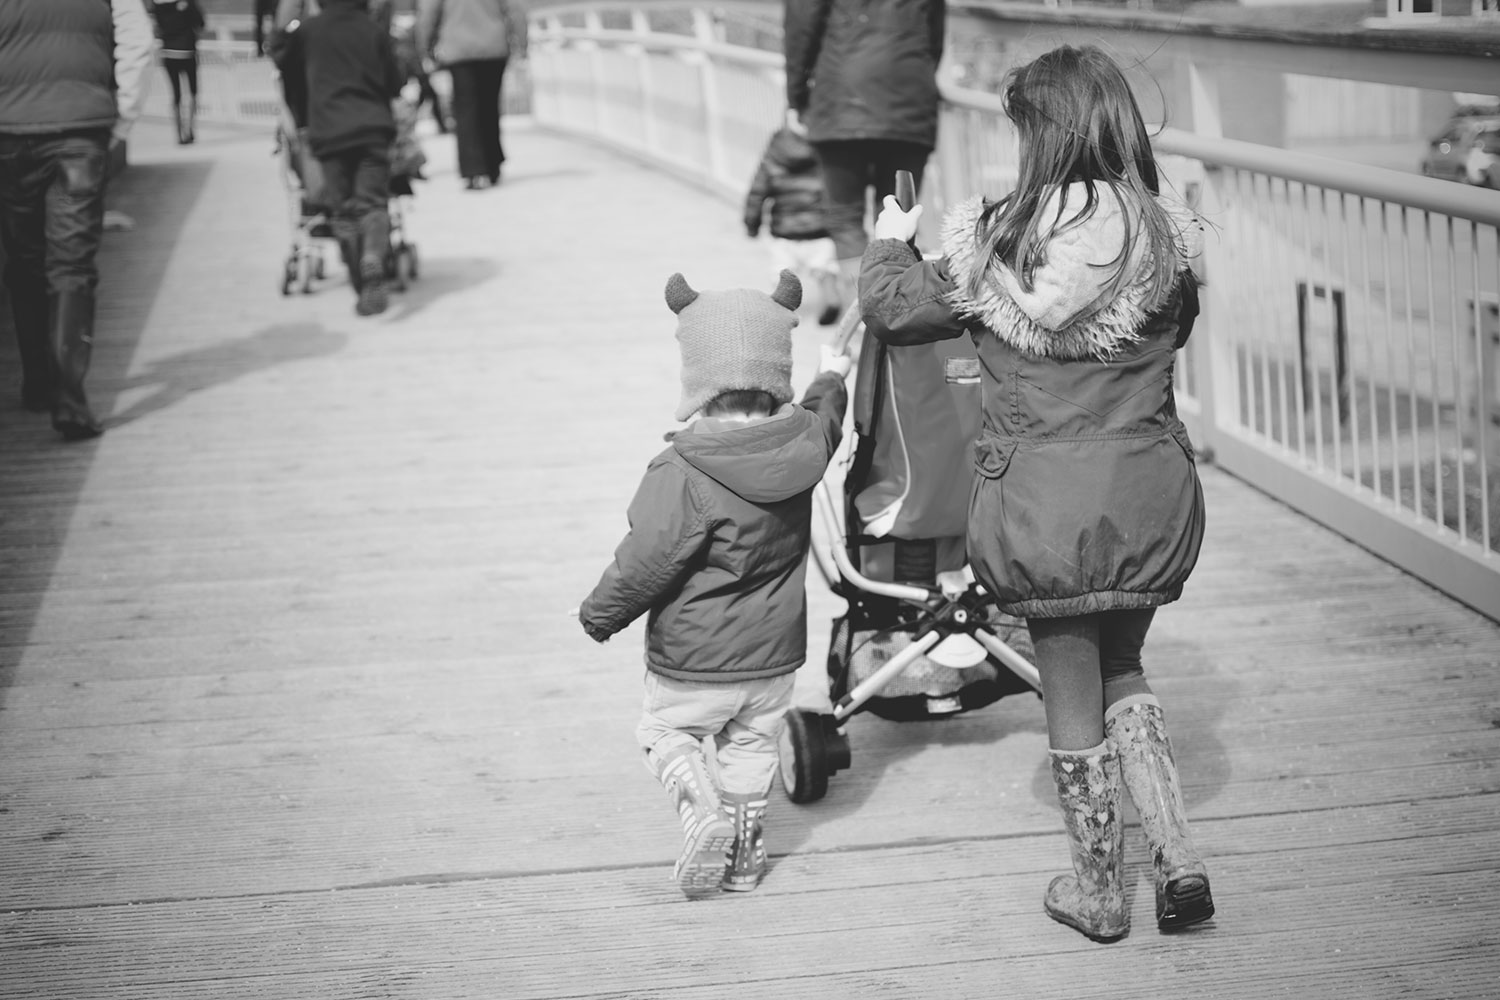 Our Day Out at the Slimbridge Wetland Centre, Gloucestershire - Cousins pushing the pram